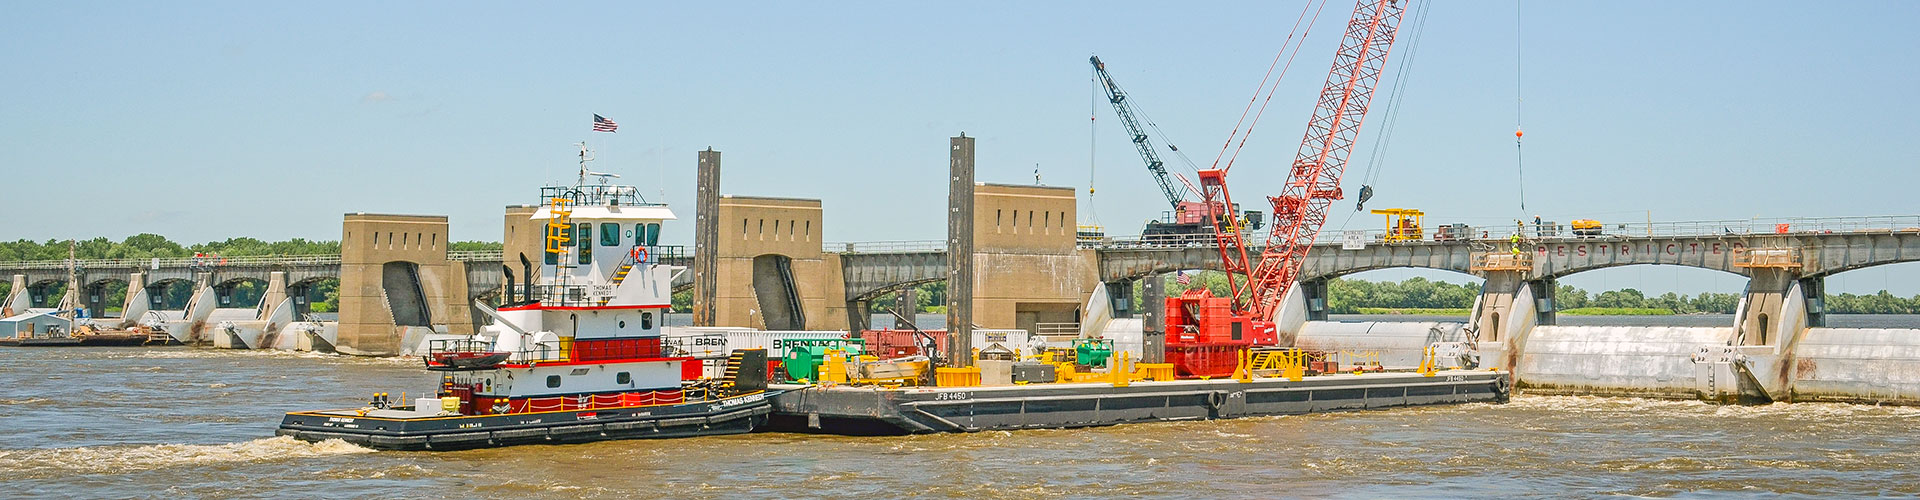 lock and dam construction, lock repairs, dam repairs, dam construction, mississippi river locks and dams, lock and dam 18, brennan, marine construction